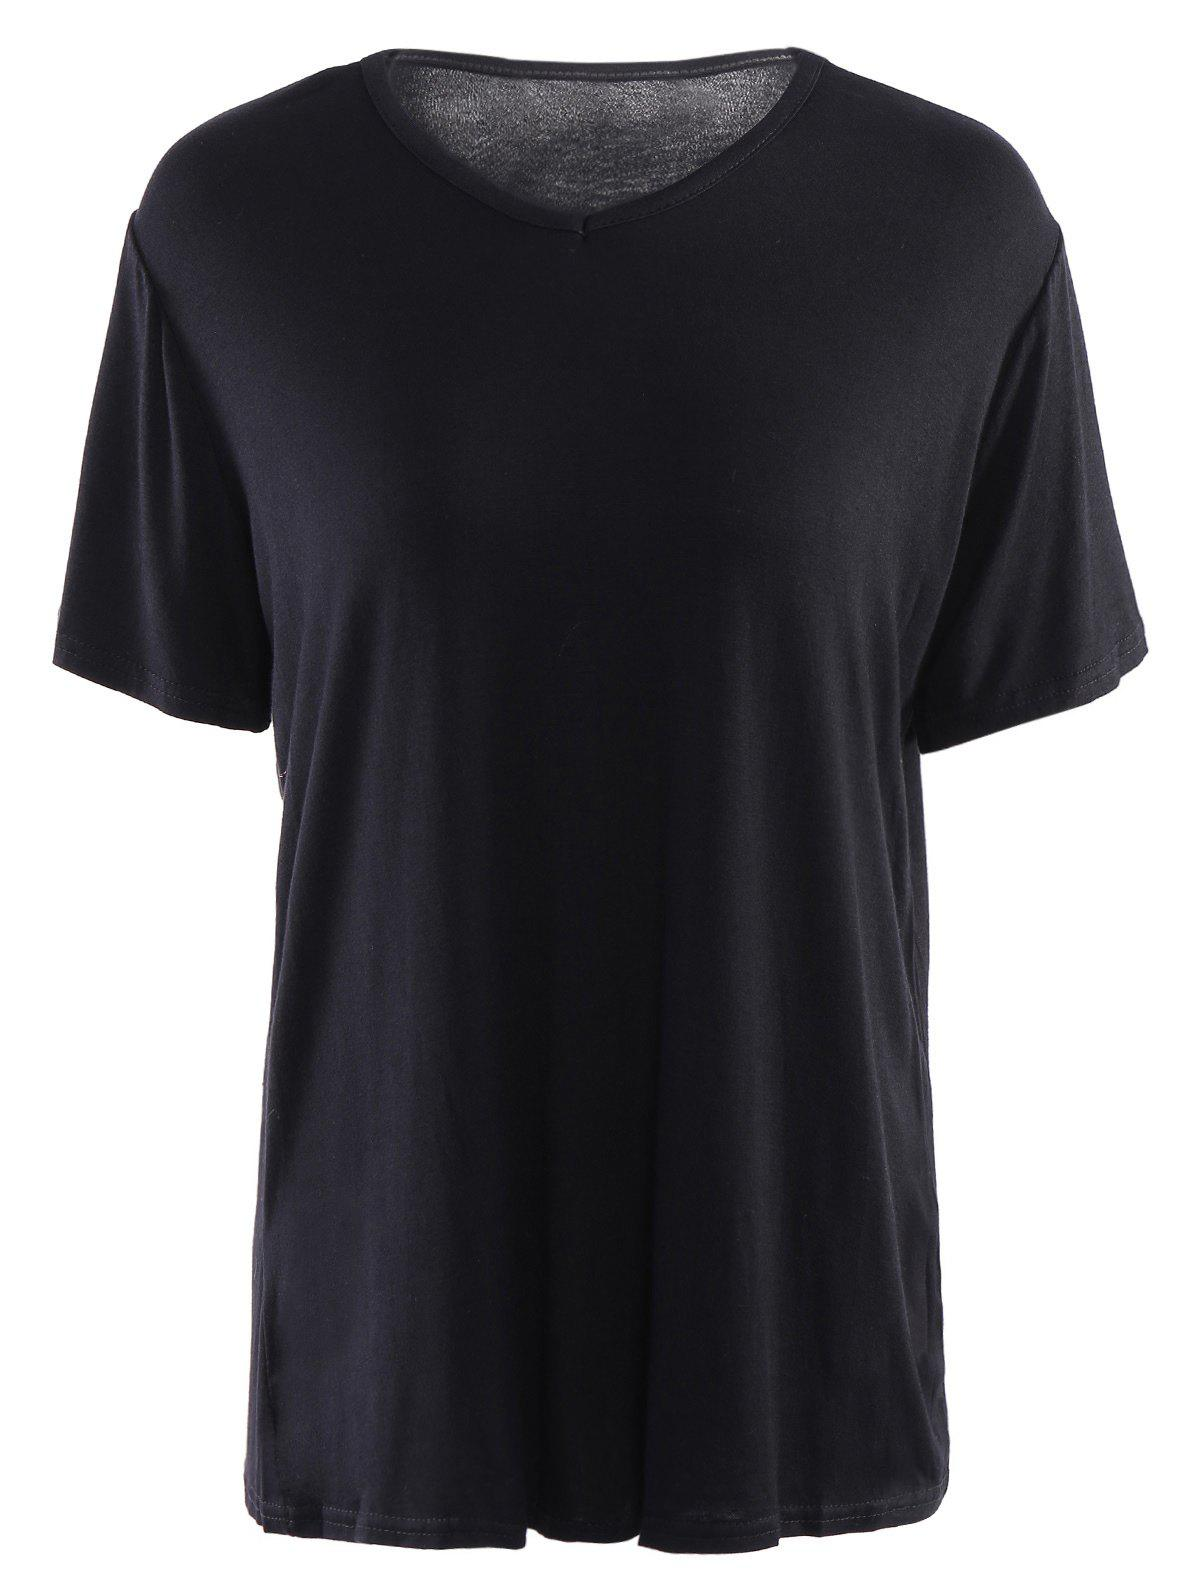 Simple Short Sleeves V Neck Pure Color T-Shirt For Women - BLACK 2XL